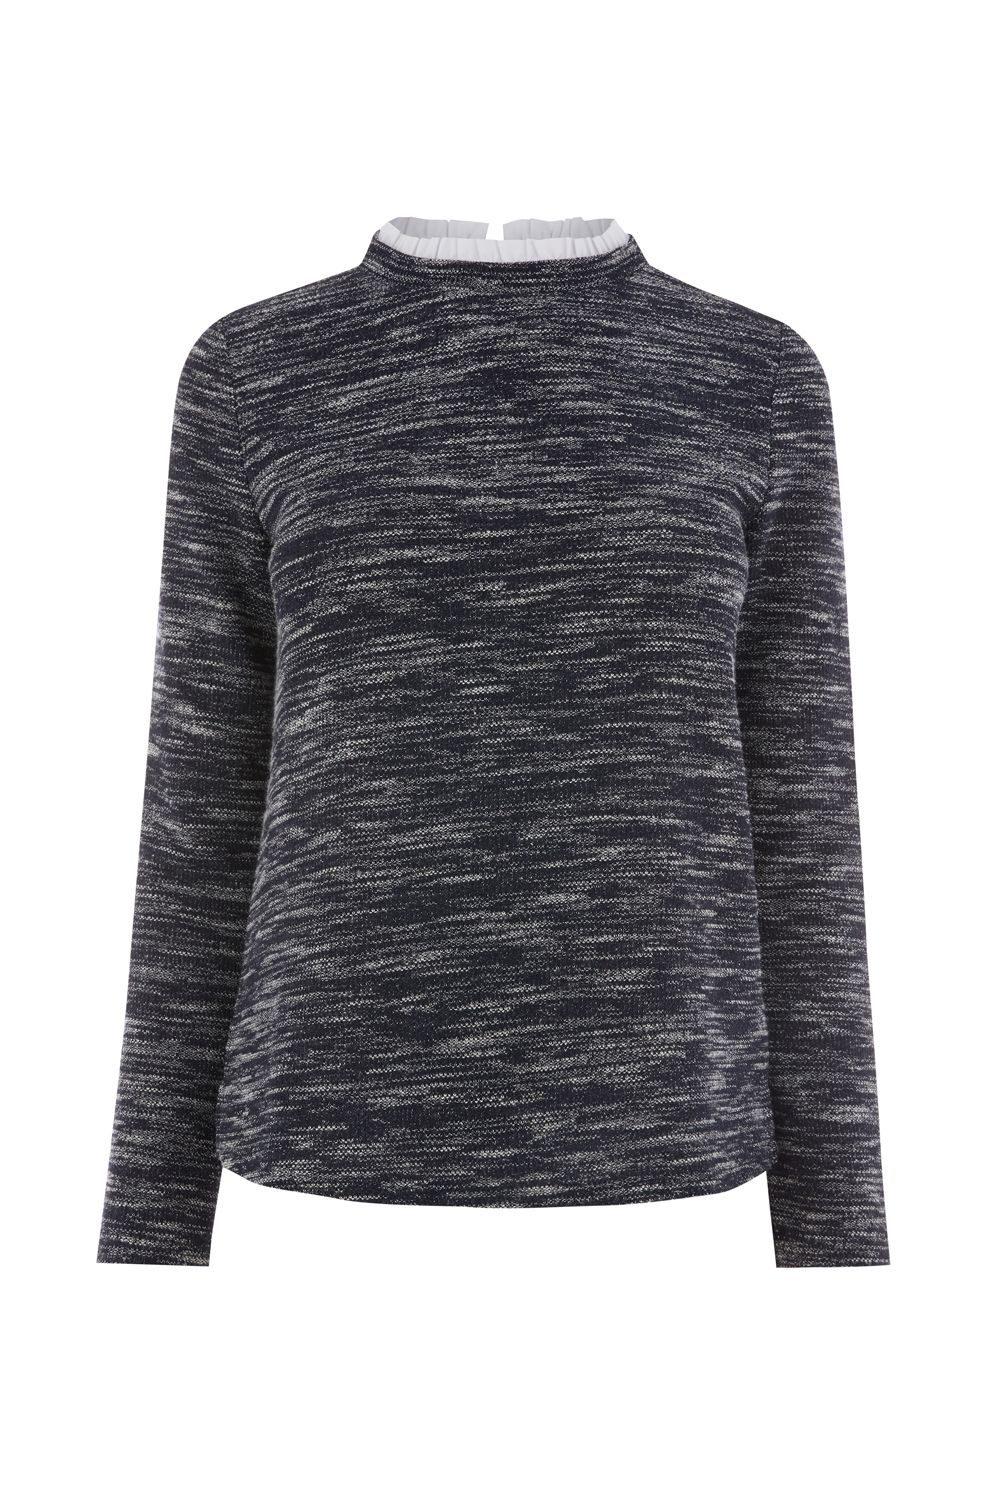 Oasis Tweed High Neck Sweat, Blue